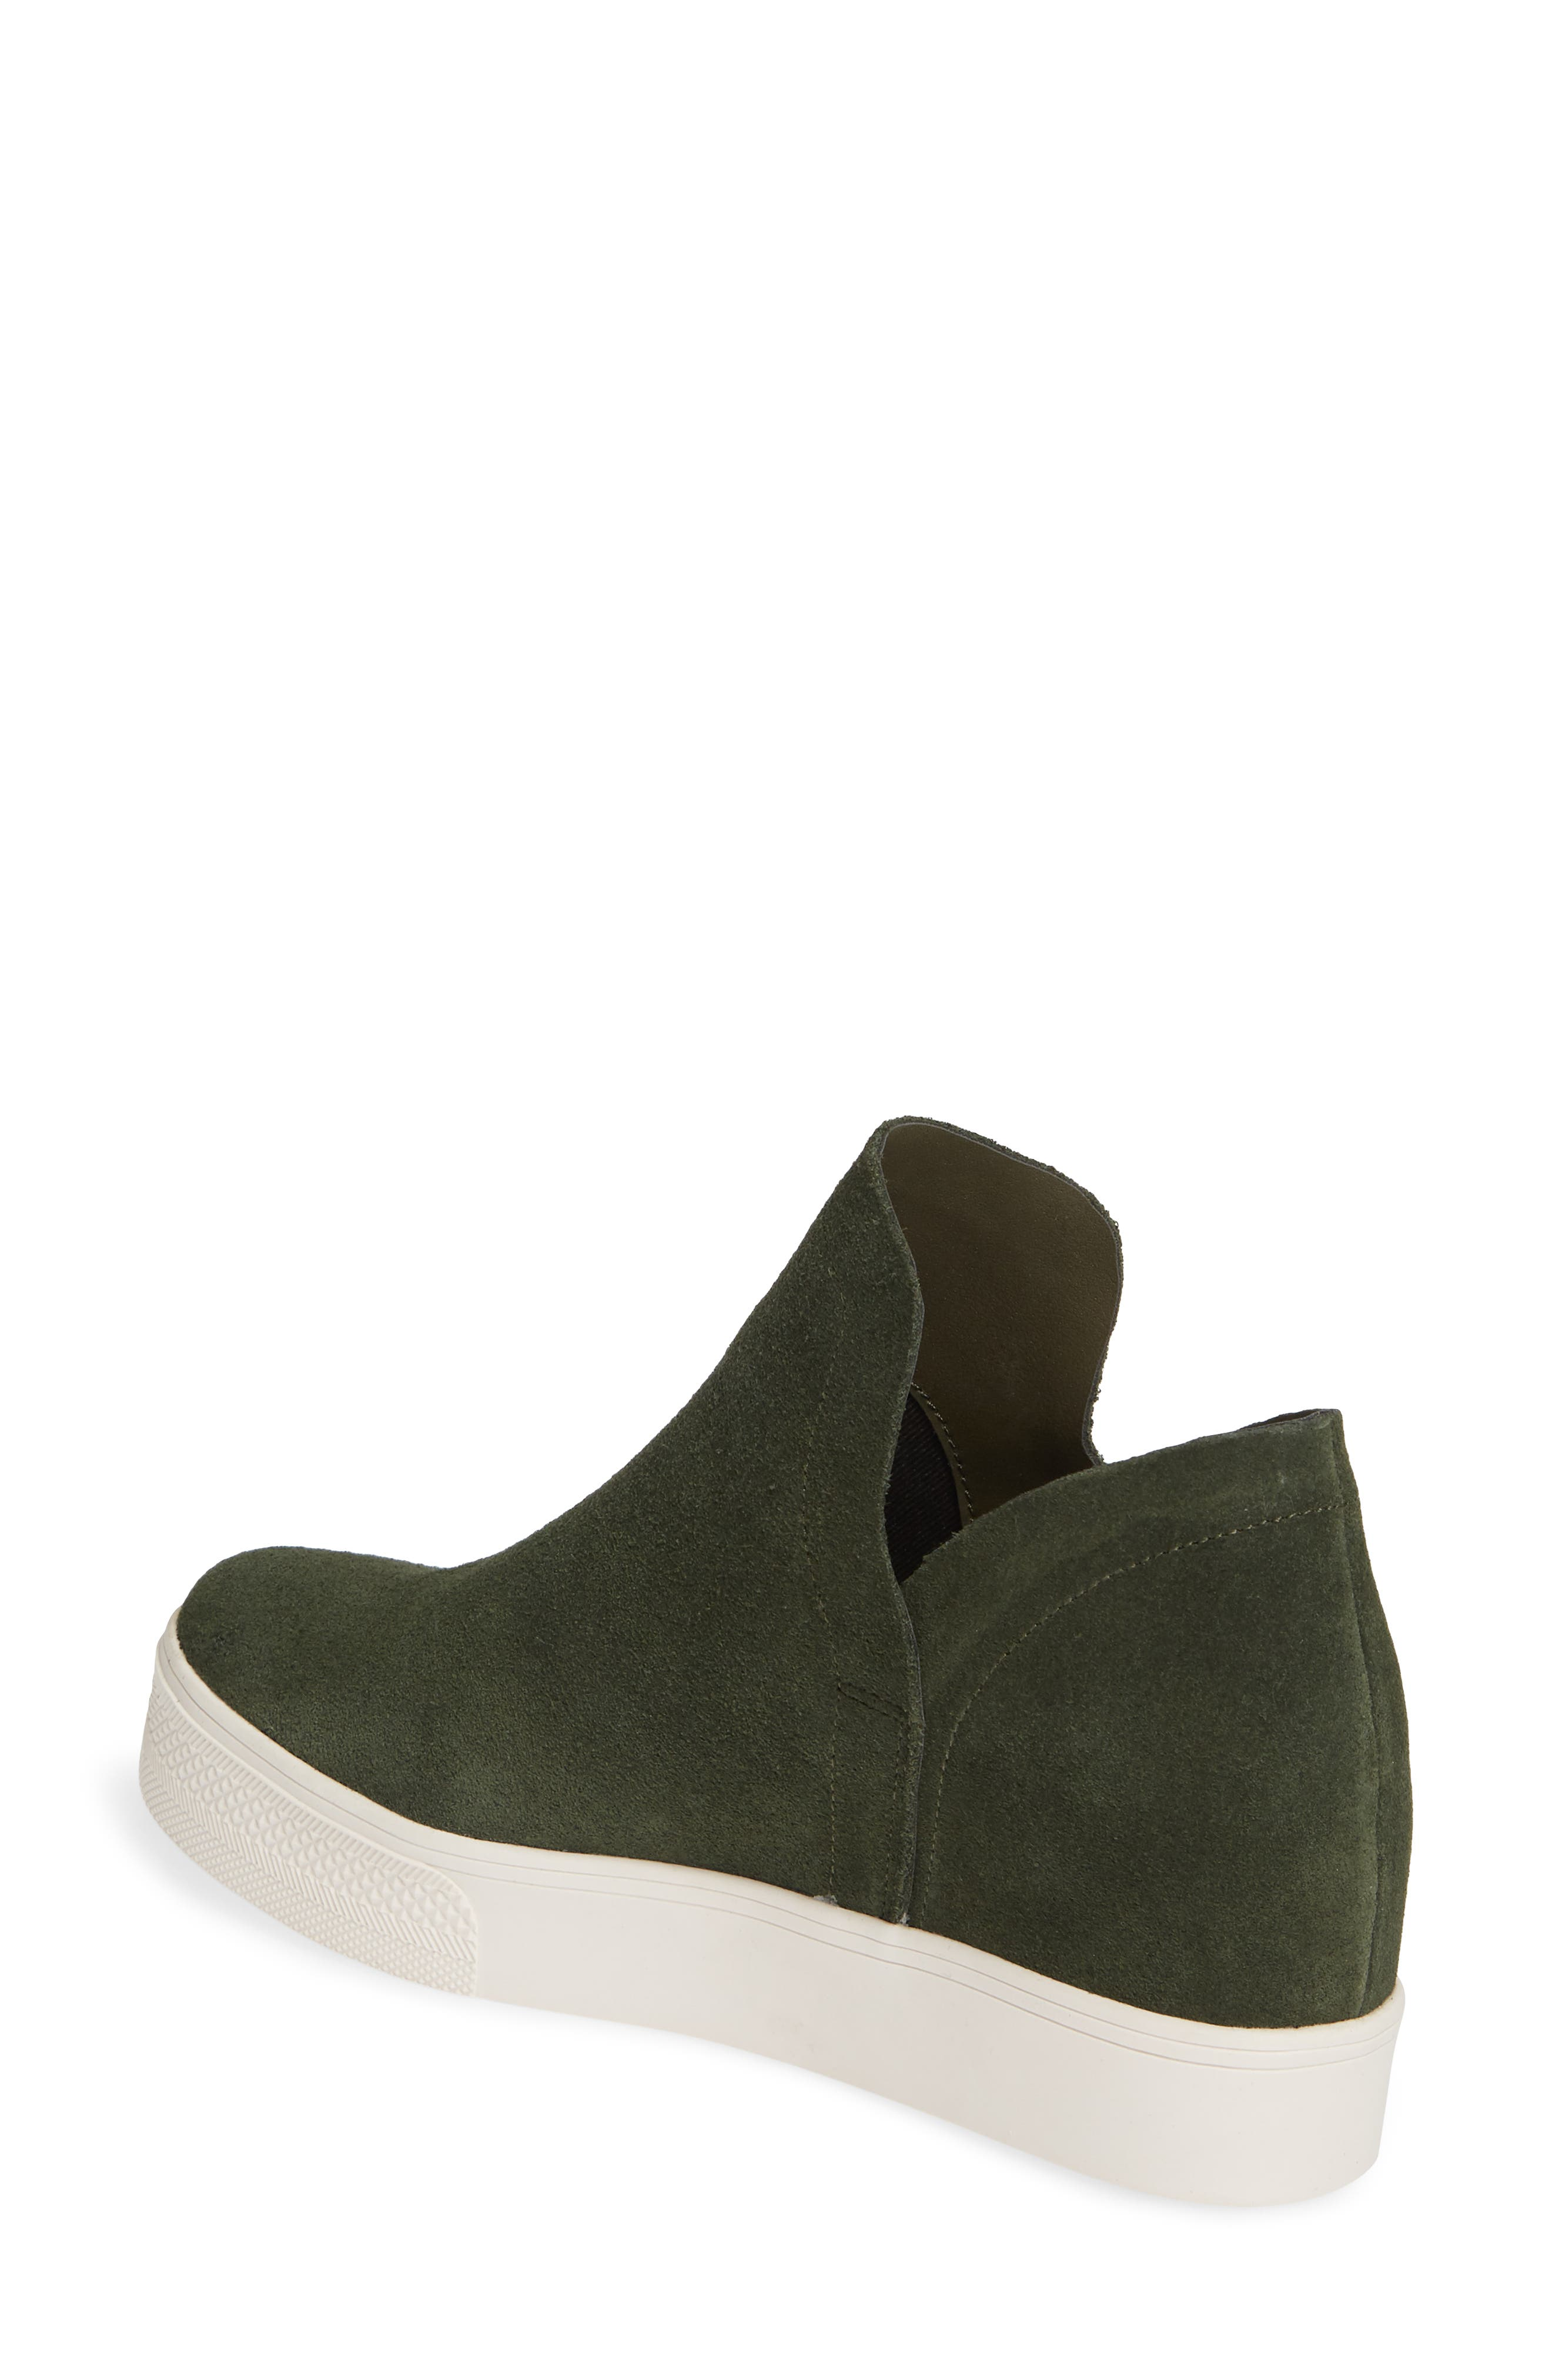 Wrangle Sneaker,                             Alternate thumbnail 2, color,                             OLIVE SUEDE